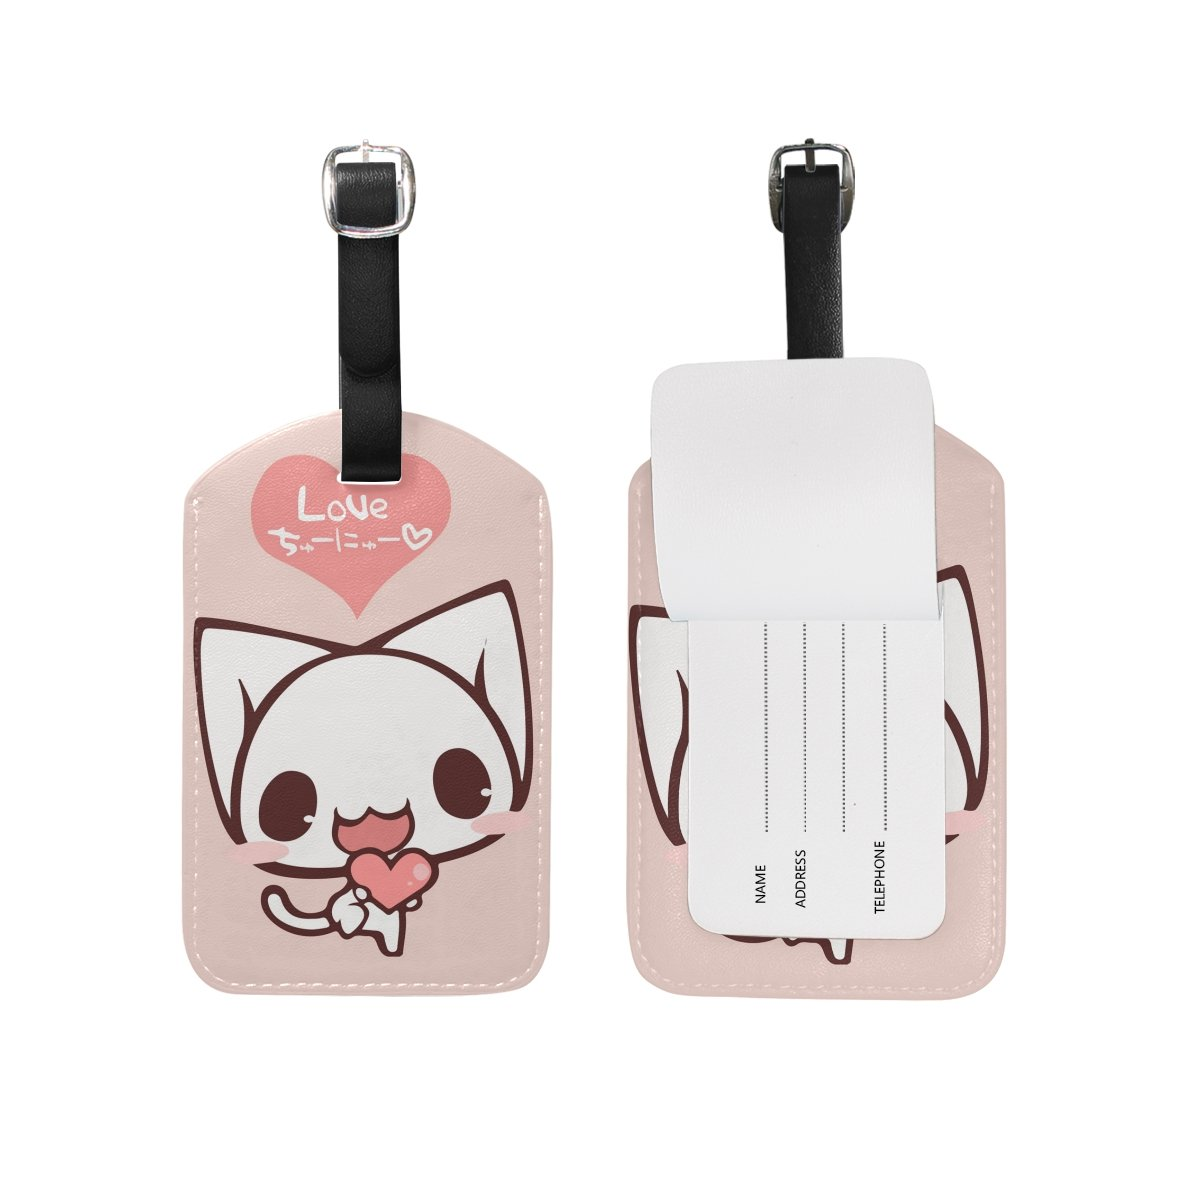 Cute Pink Love Cat Travel Leather Luggage Baggage Suitcases Tags Label Set of 2